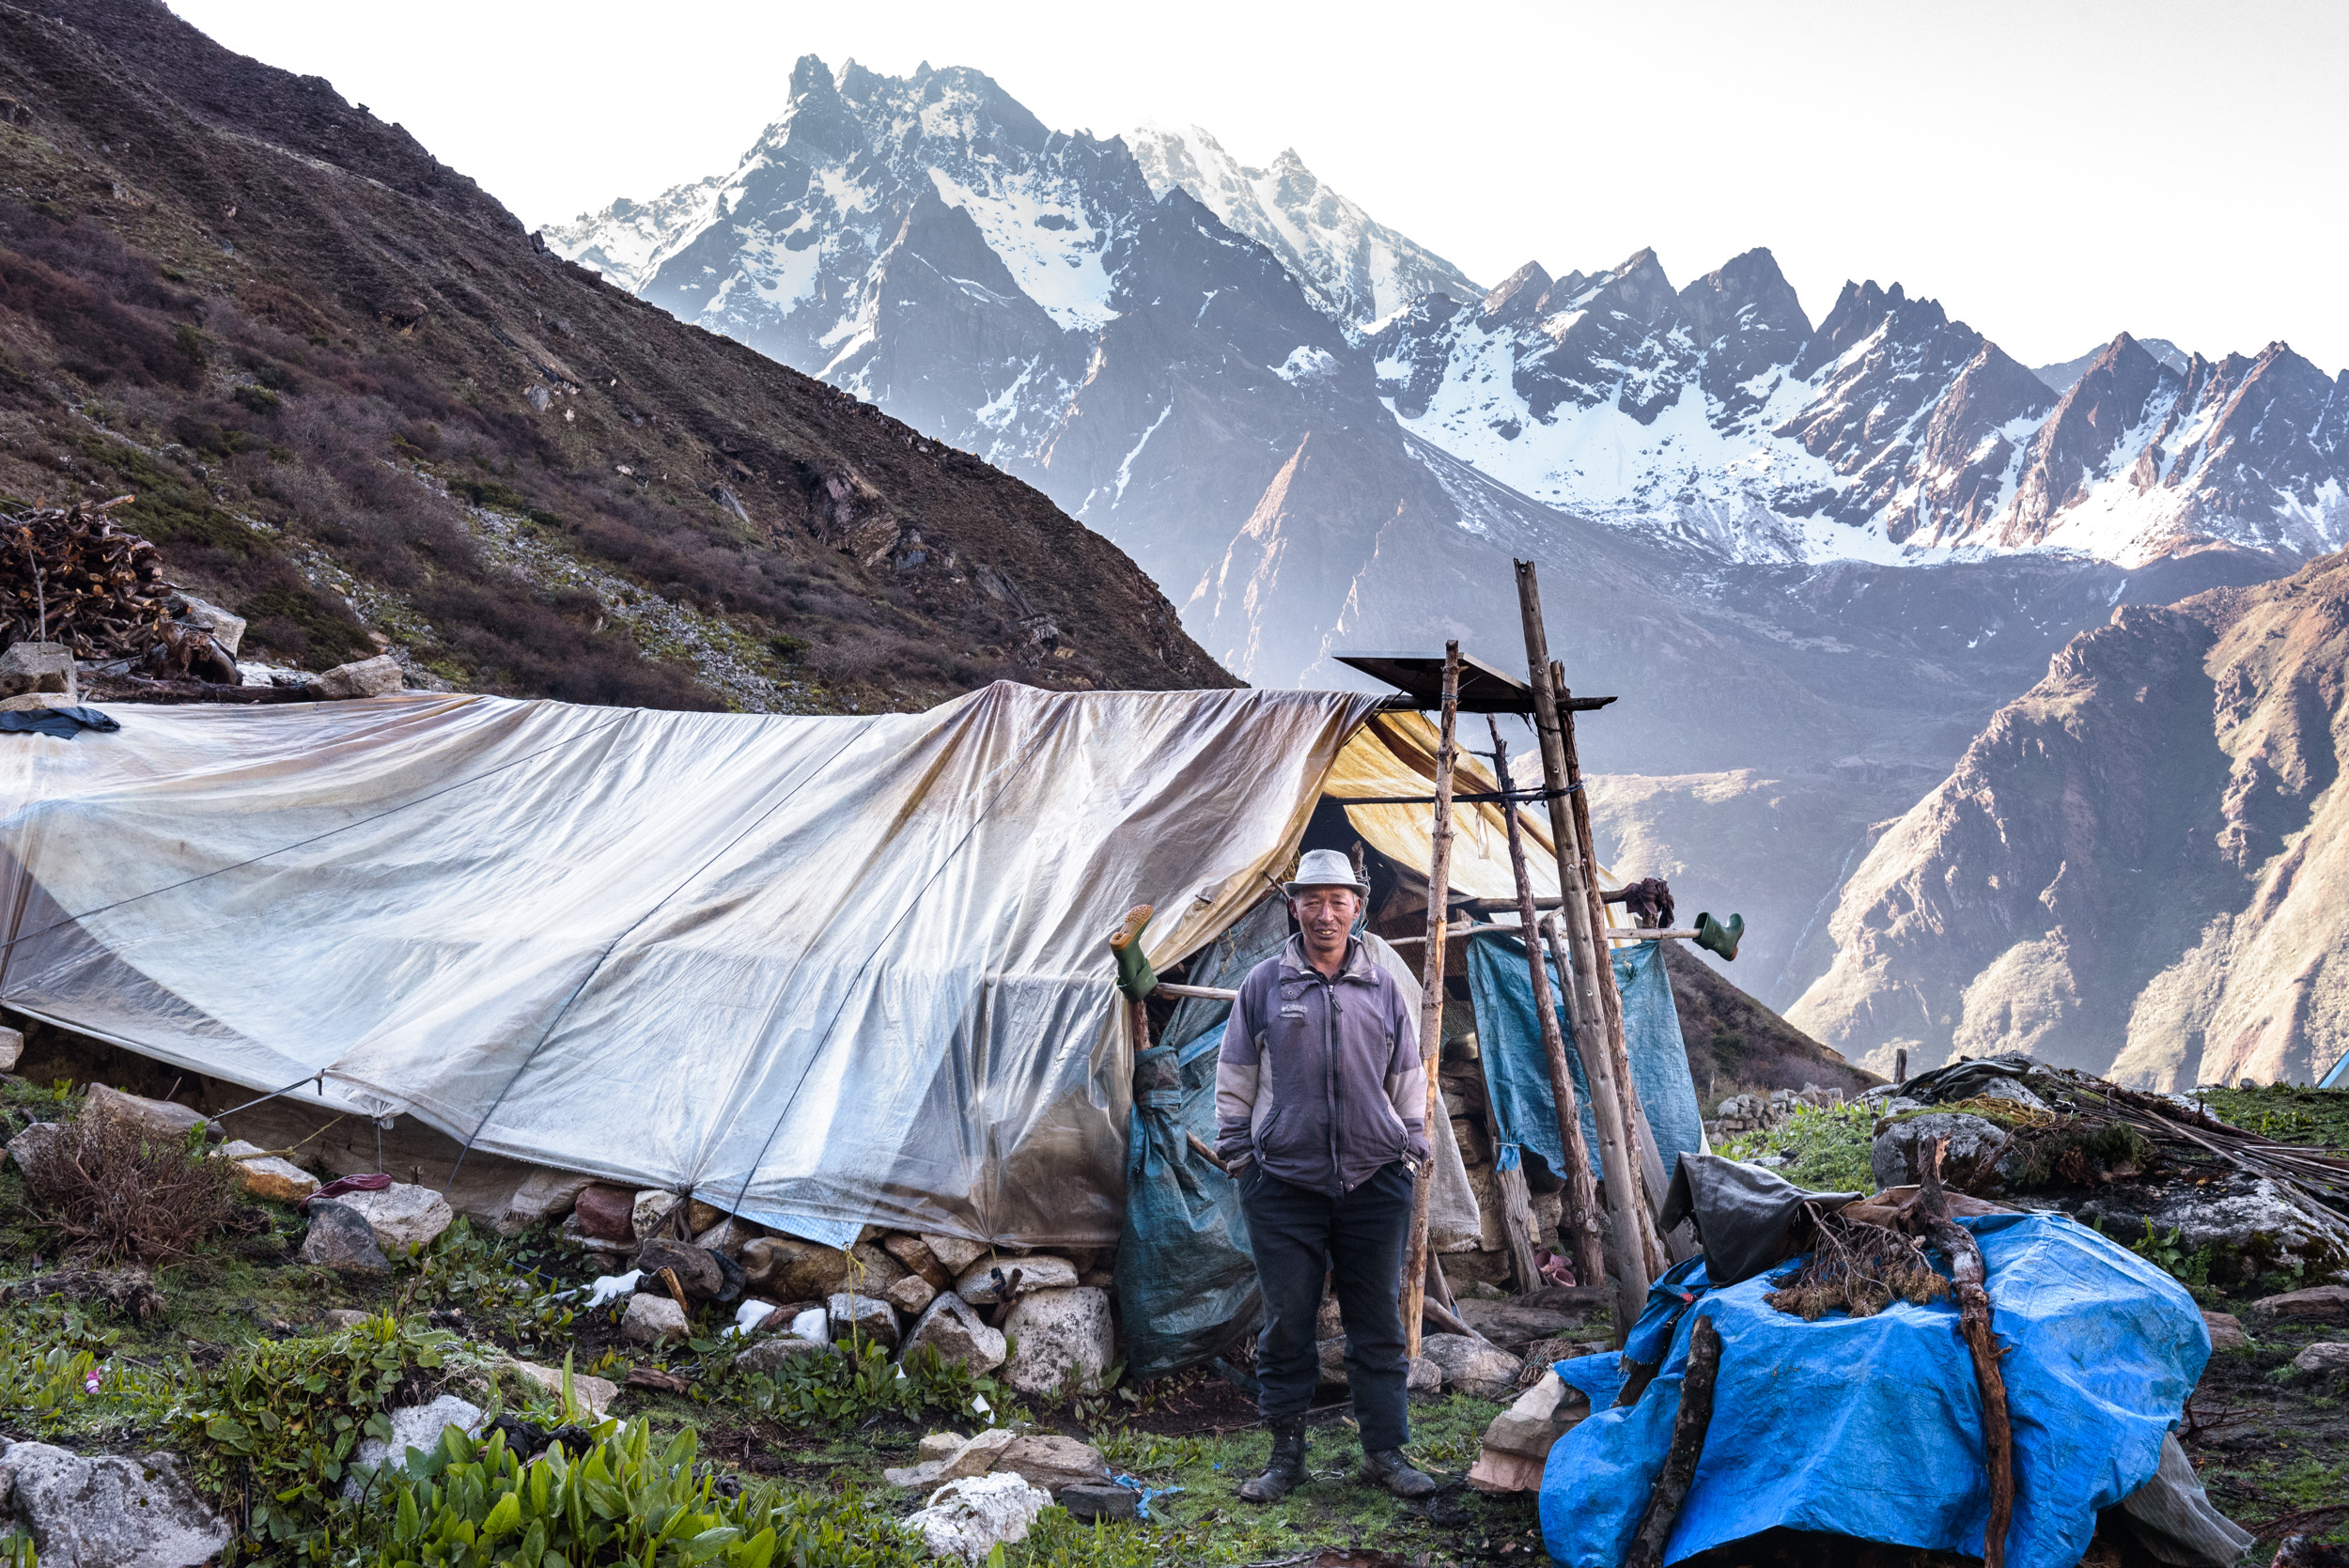 Dugya outside the shelter he shares with Samten Doma at Thoktanglaka.